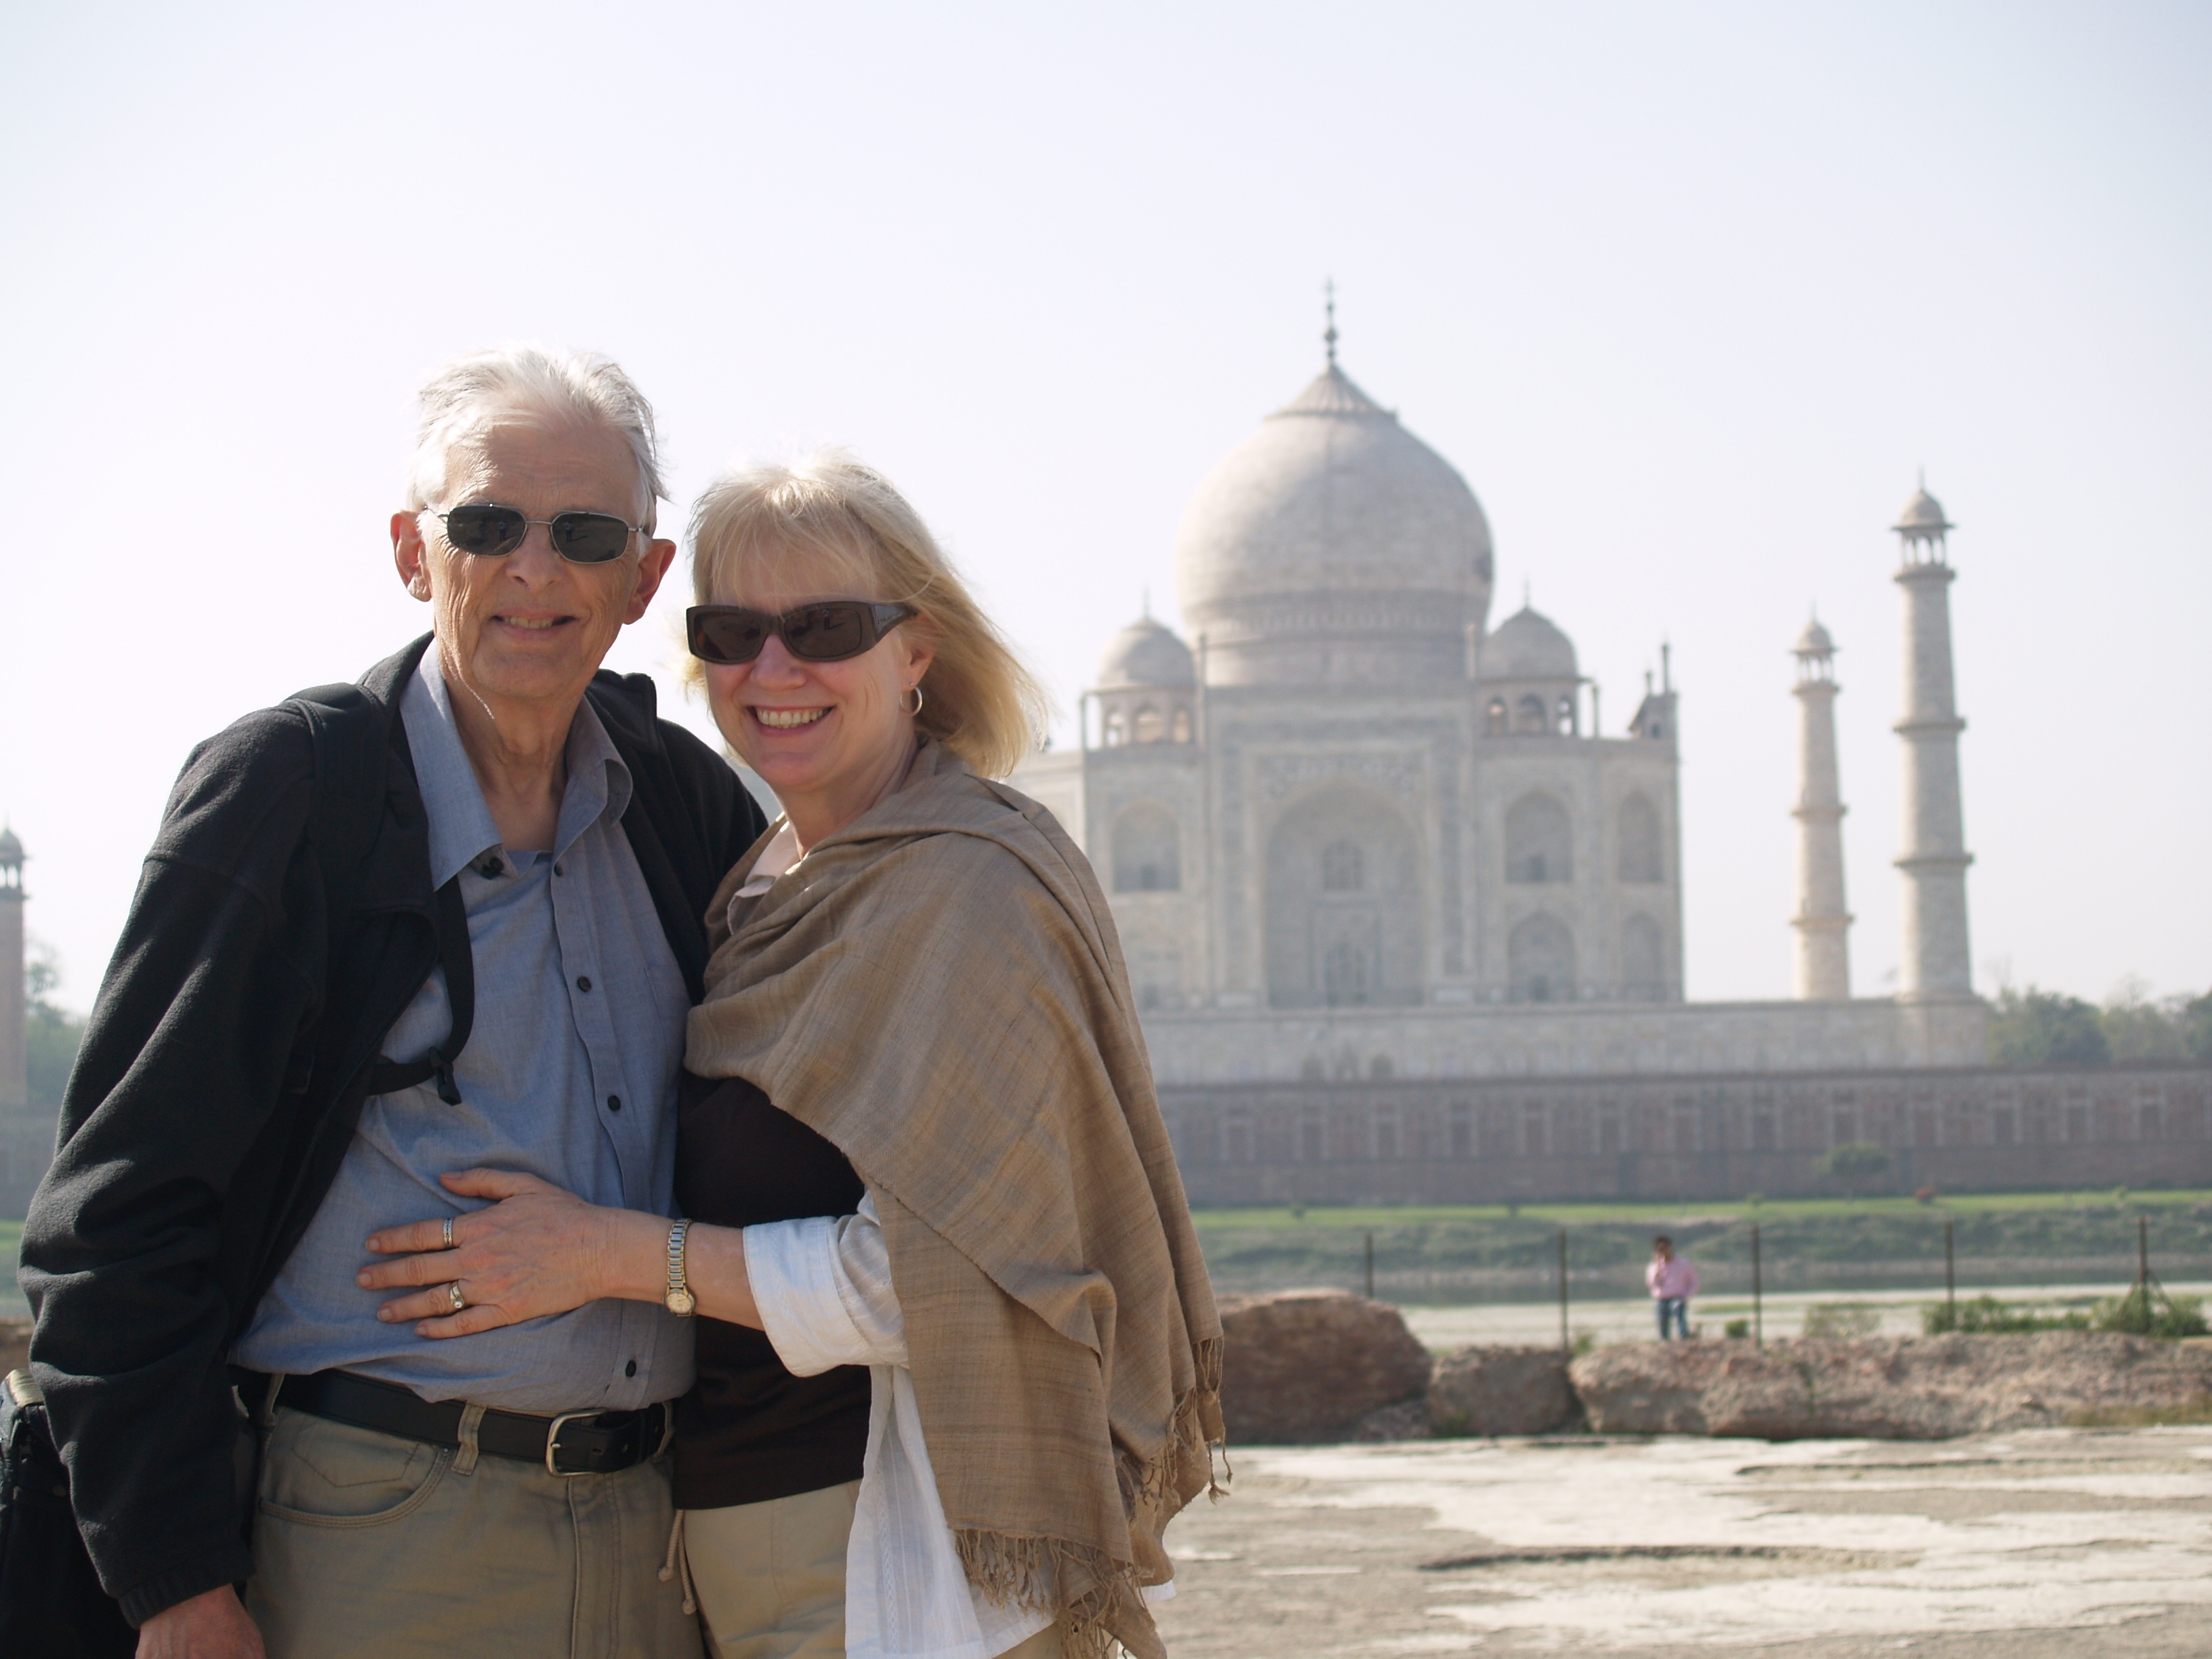 Hepatitis C Treatment: An Opportunity For Medical Travel? | Lucinda inside Travel To India For Hep C Treatment